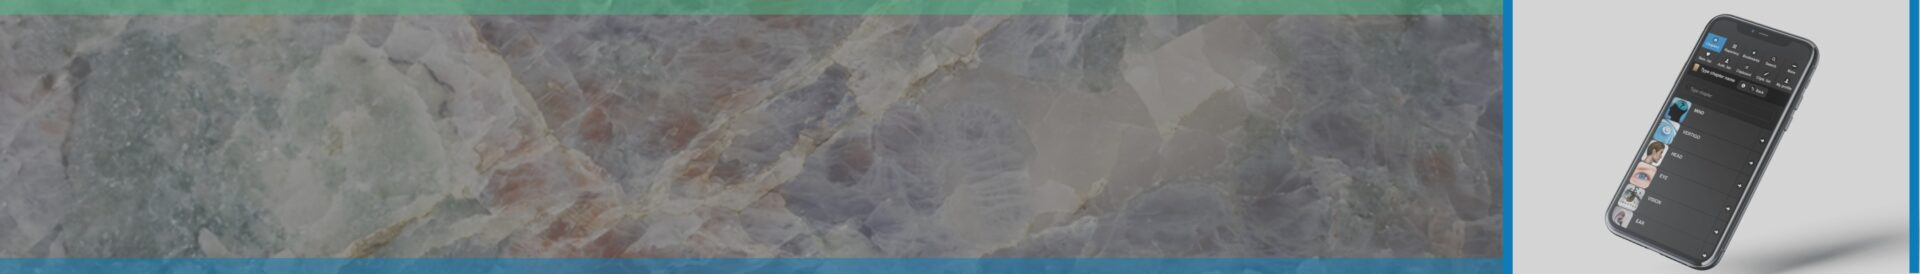 SYNTHESIS_APP_HEADER